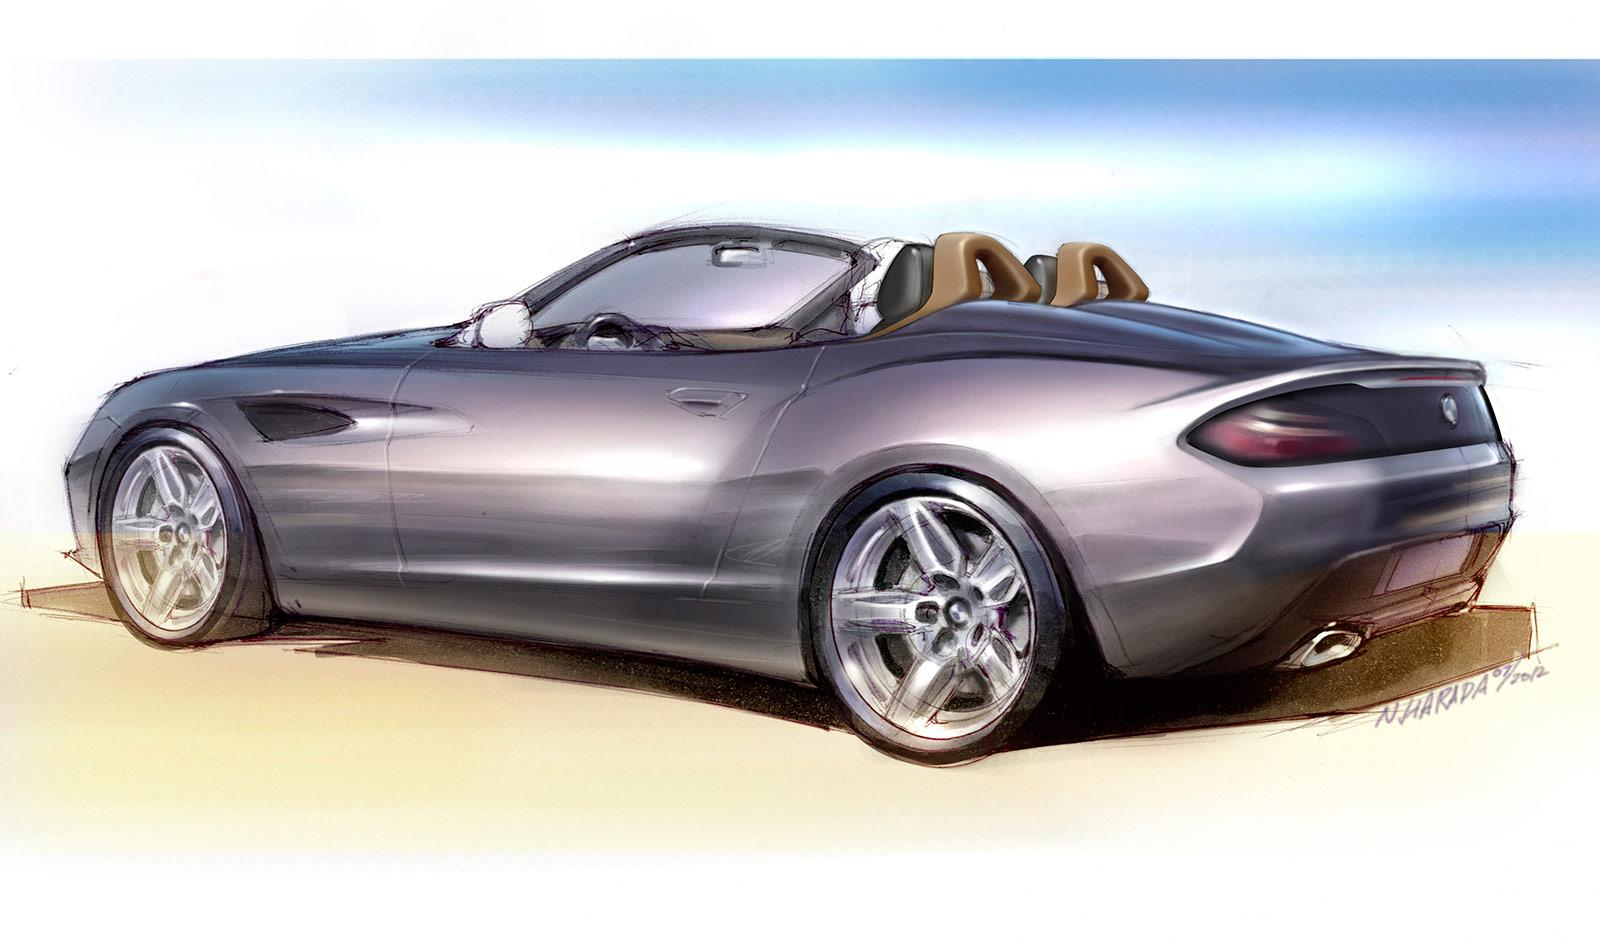 BMW Zagato Roadster - Design Sketch - Car Body Design